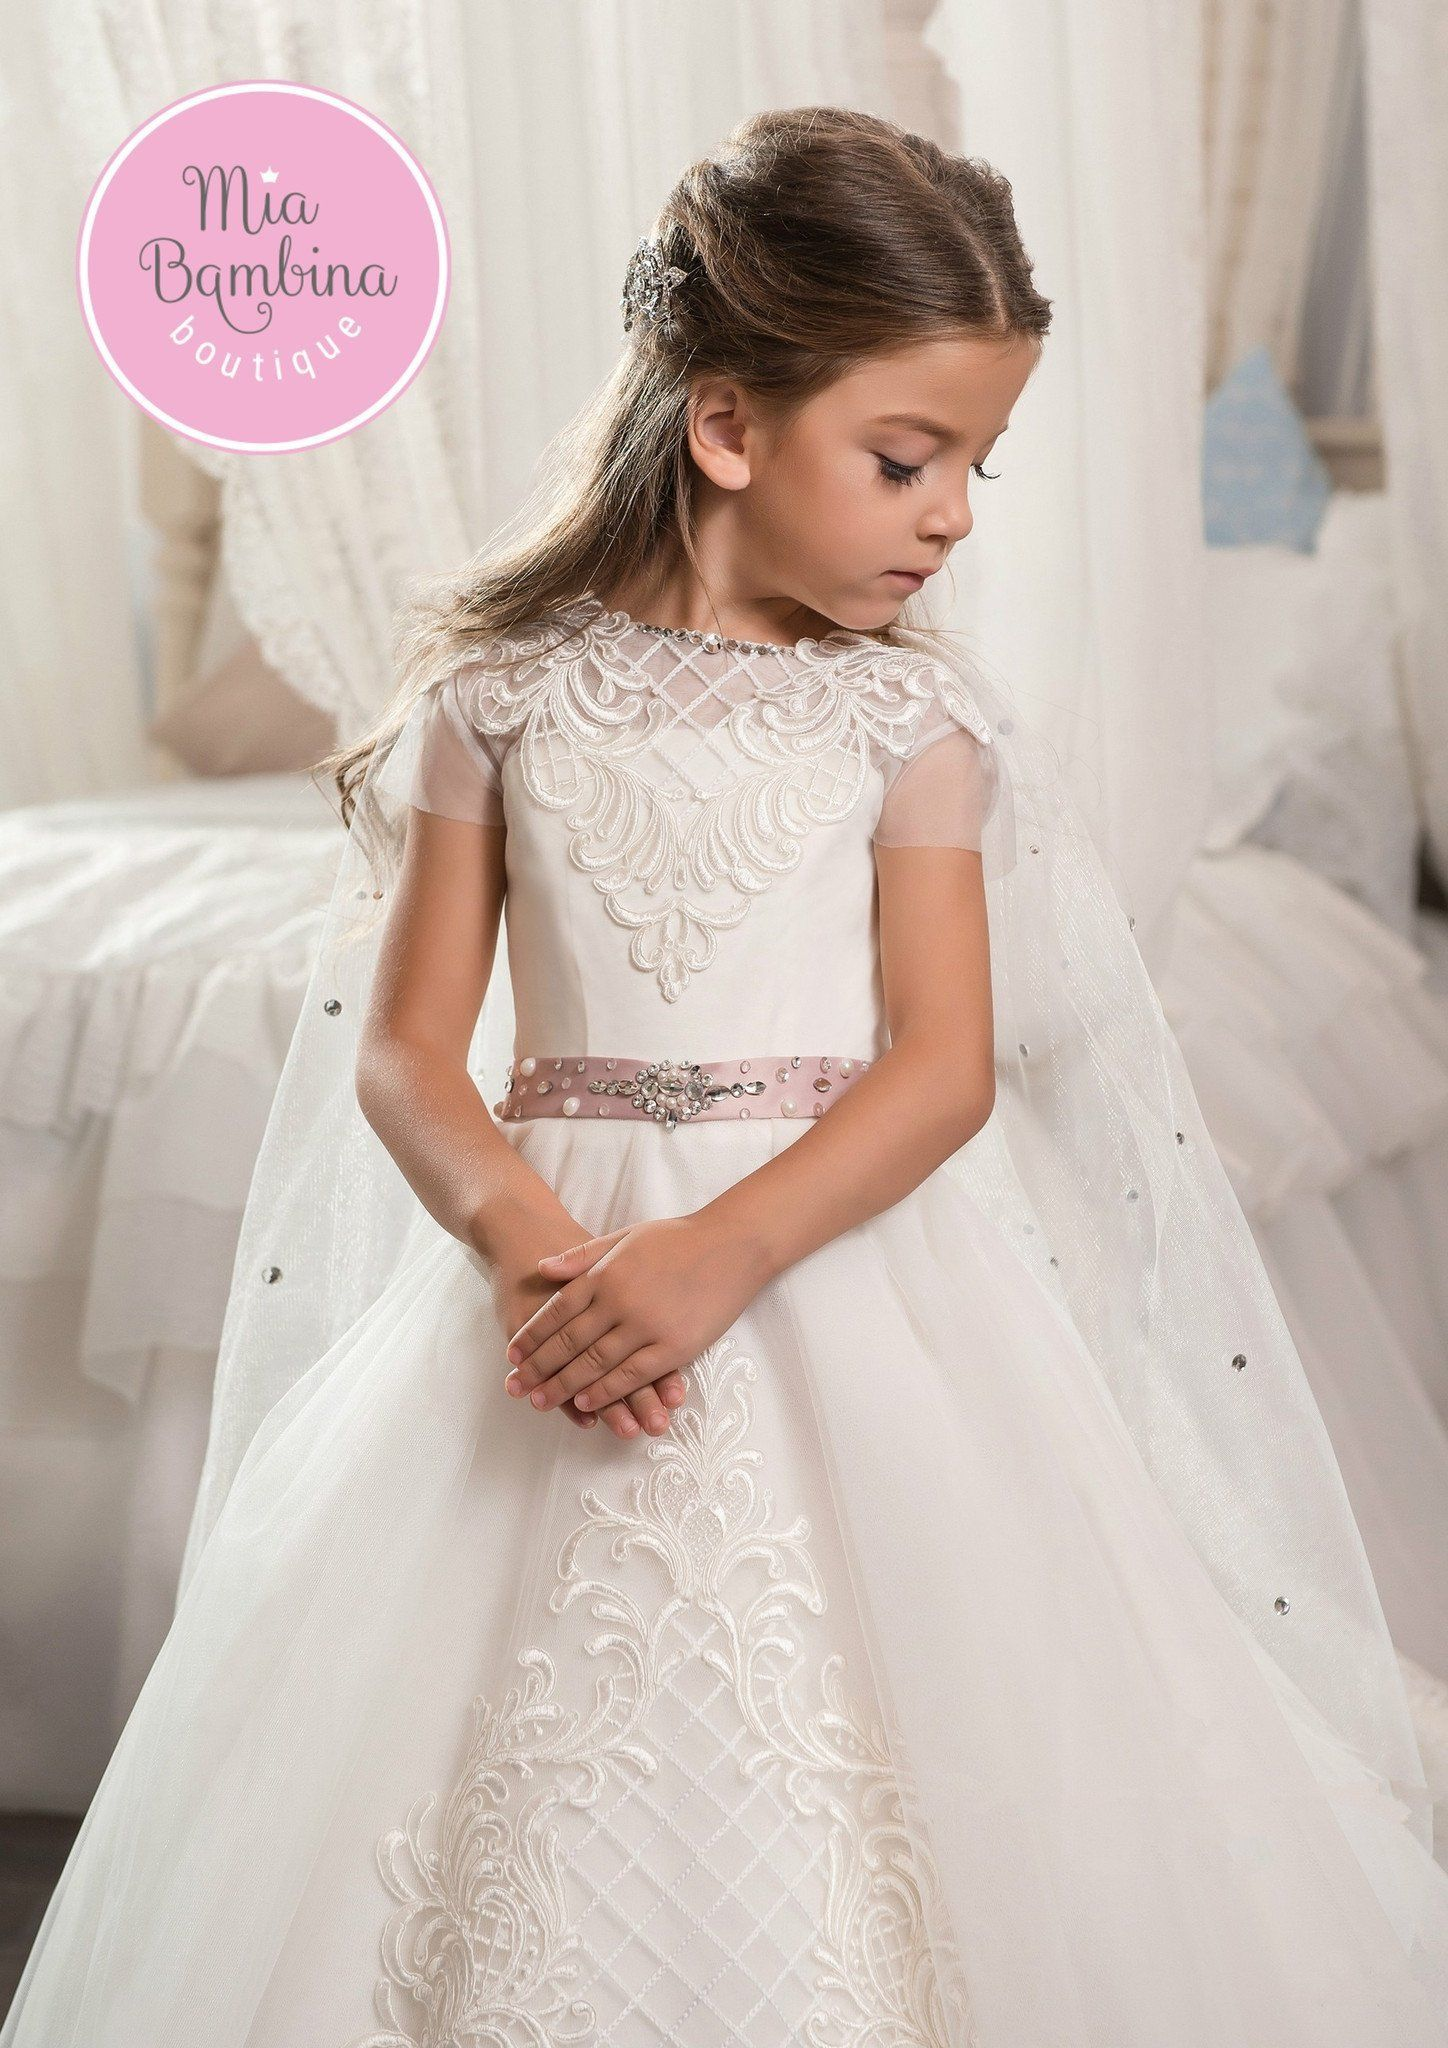 The Colorado Flower Girl Dress Is A Beautiful A Line Dress With A